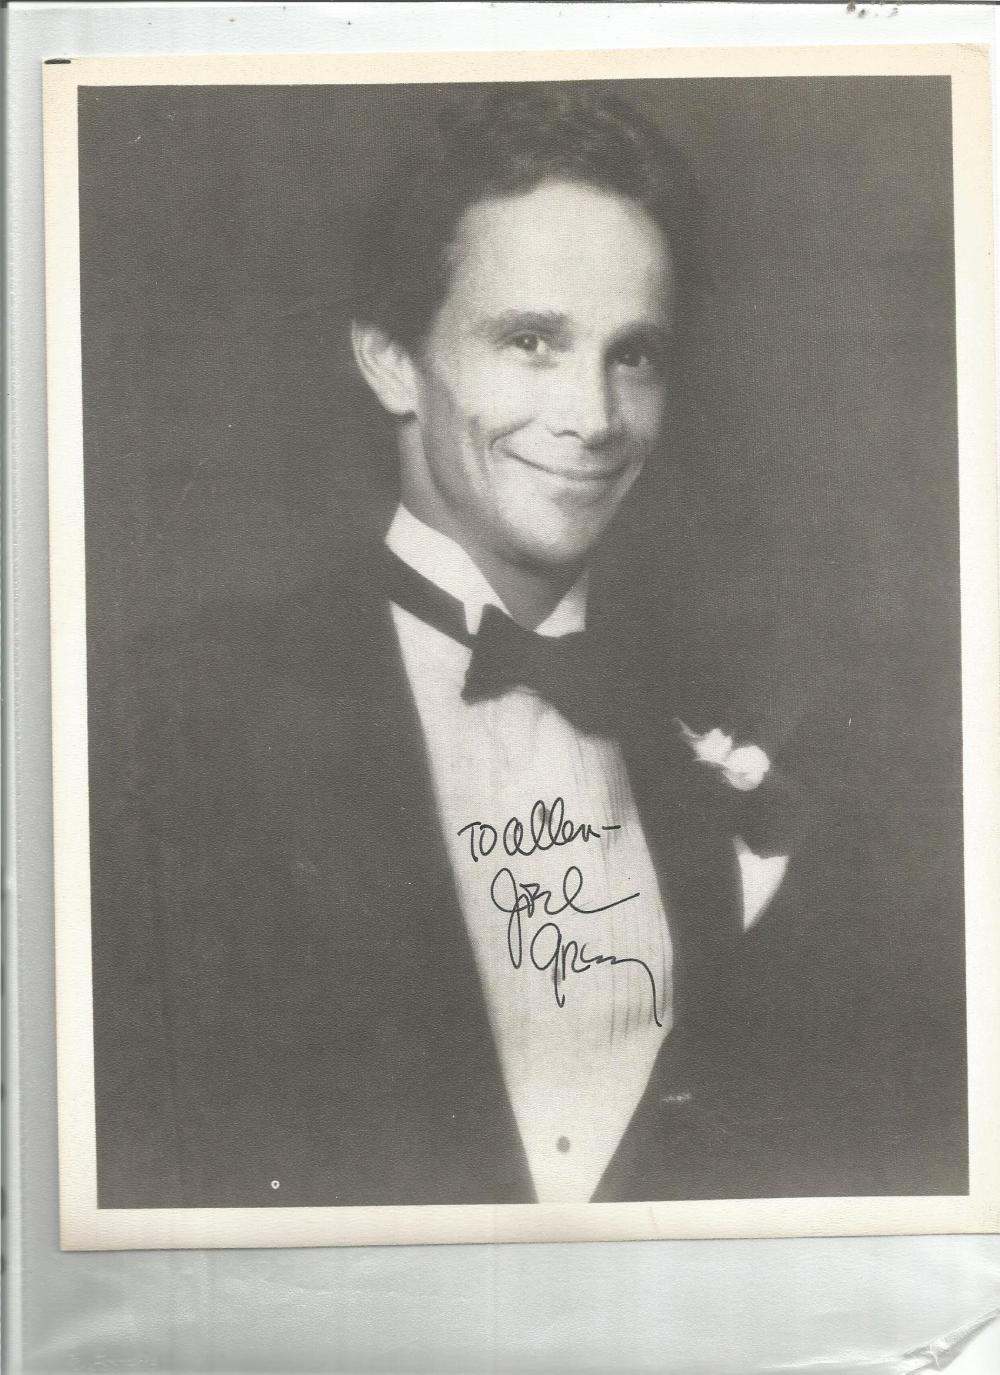 Joel Grey signed 10 x 8 b/w photo to Allen. Good Condition. All signed pieces come with a